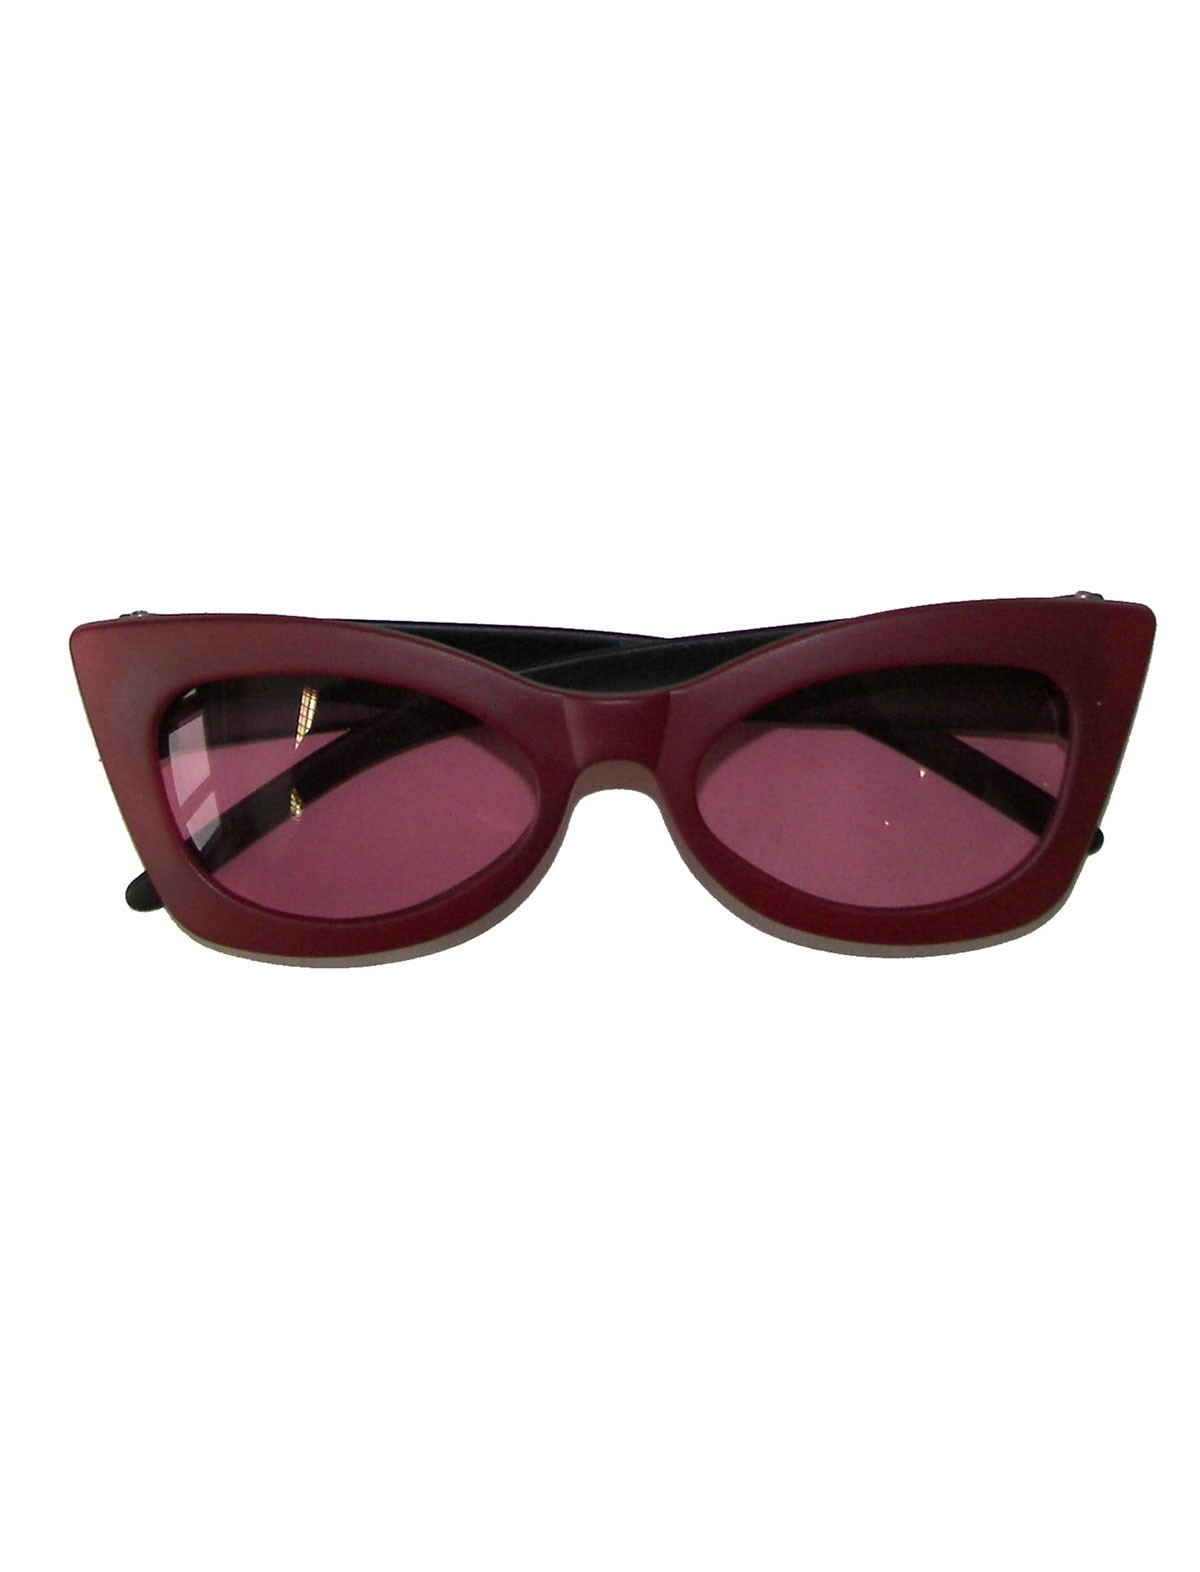 Brille Funny rot